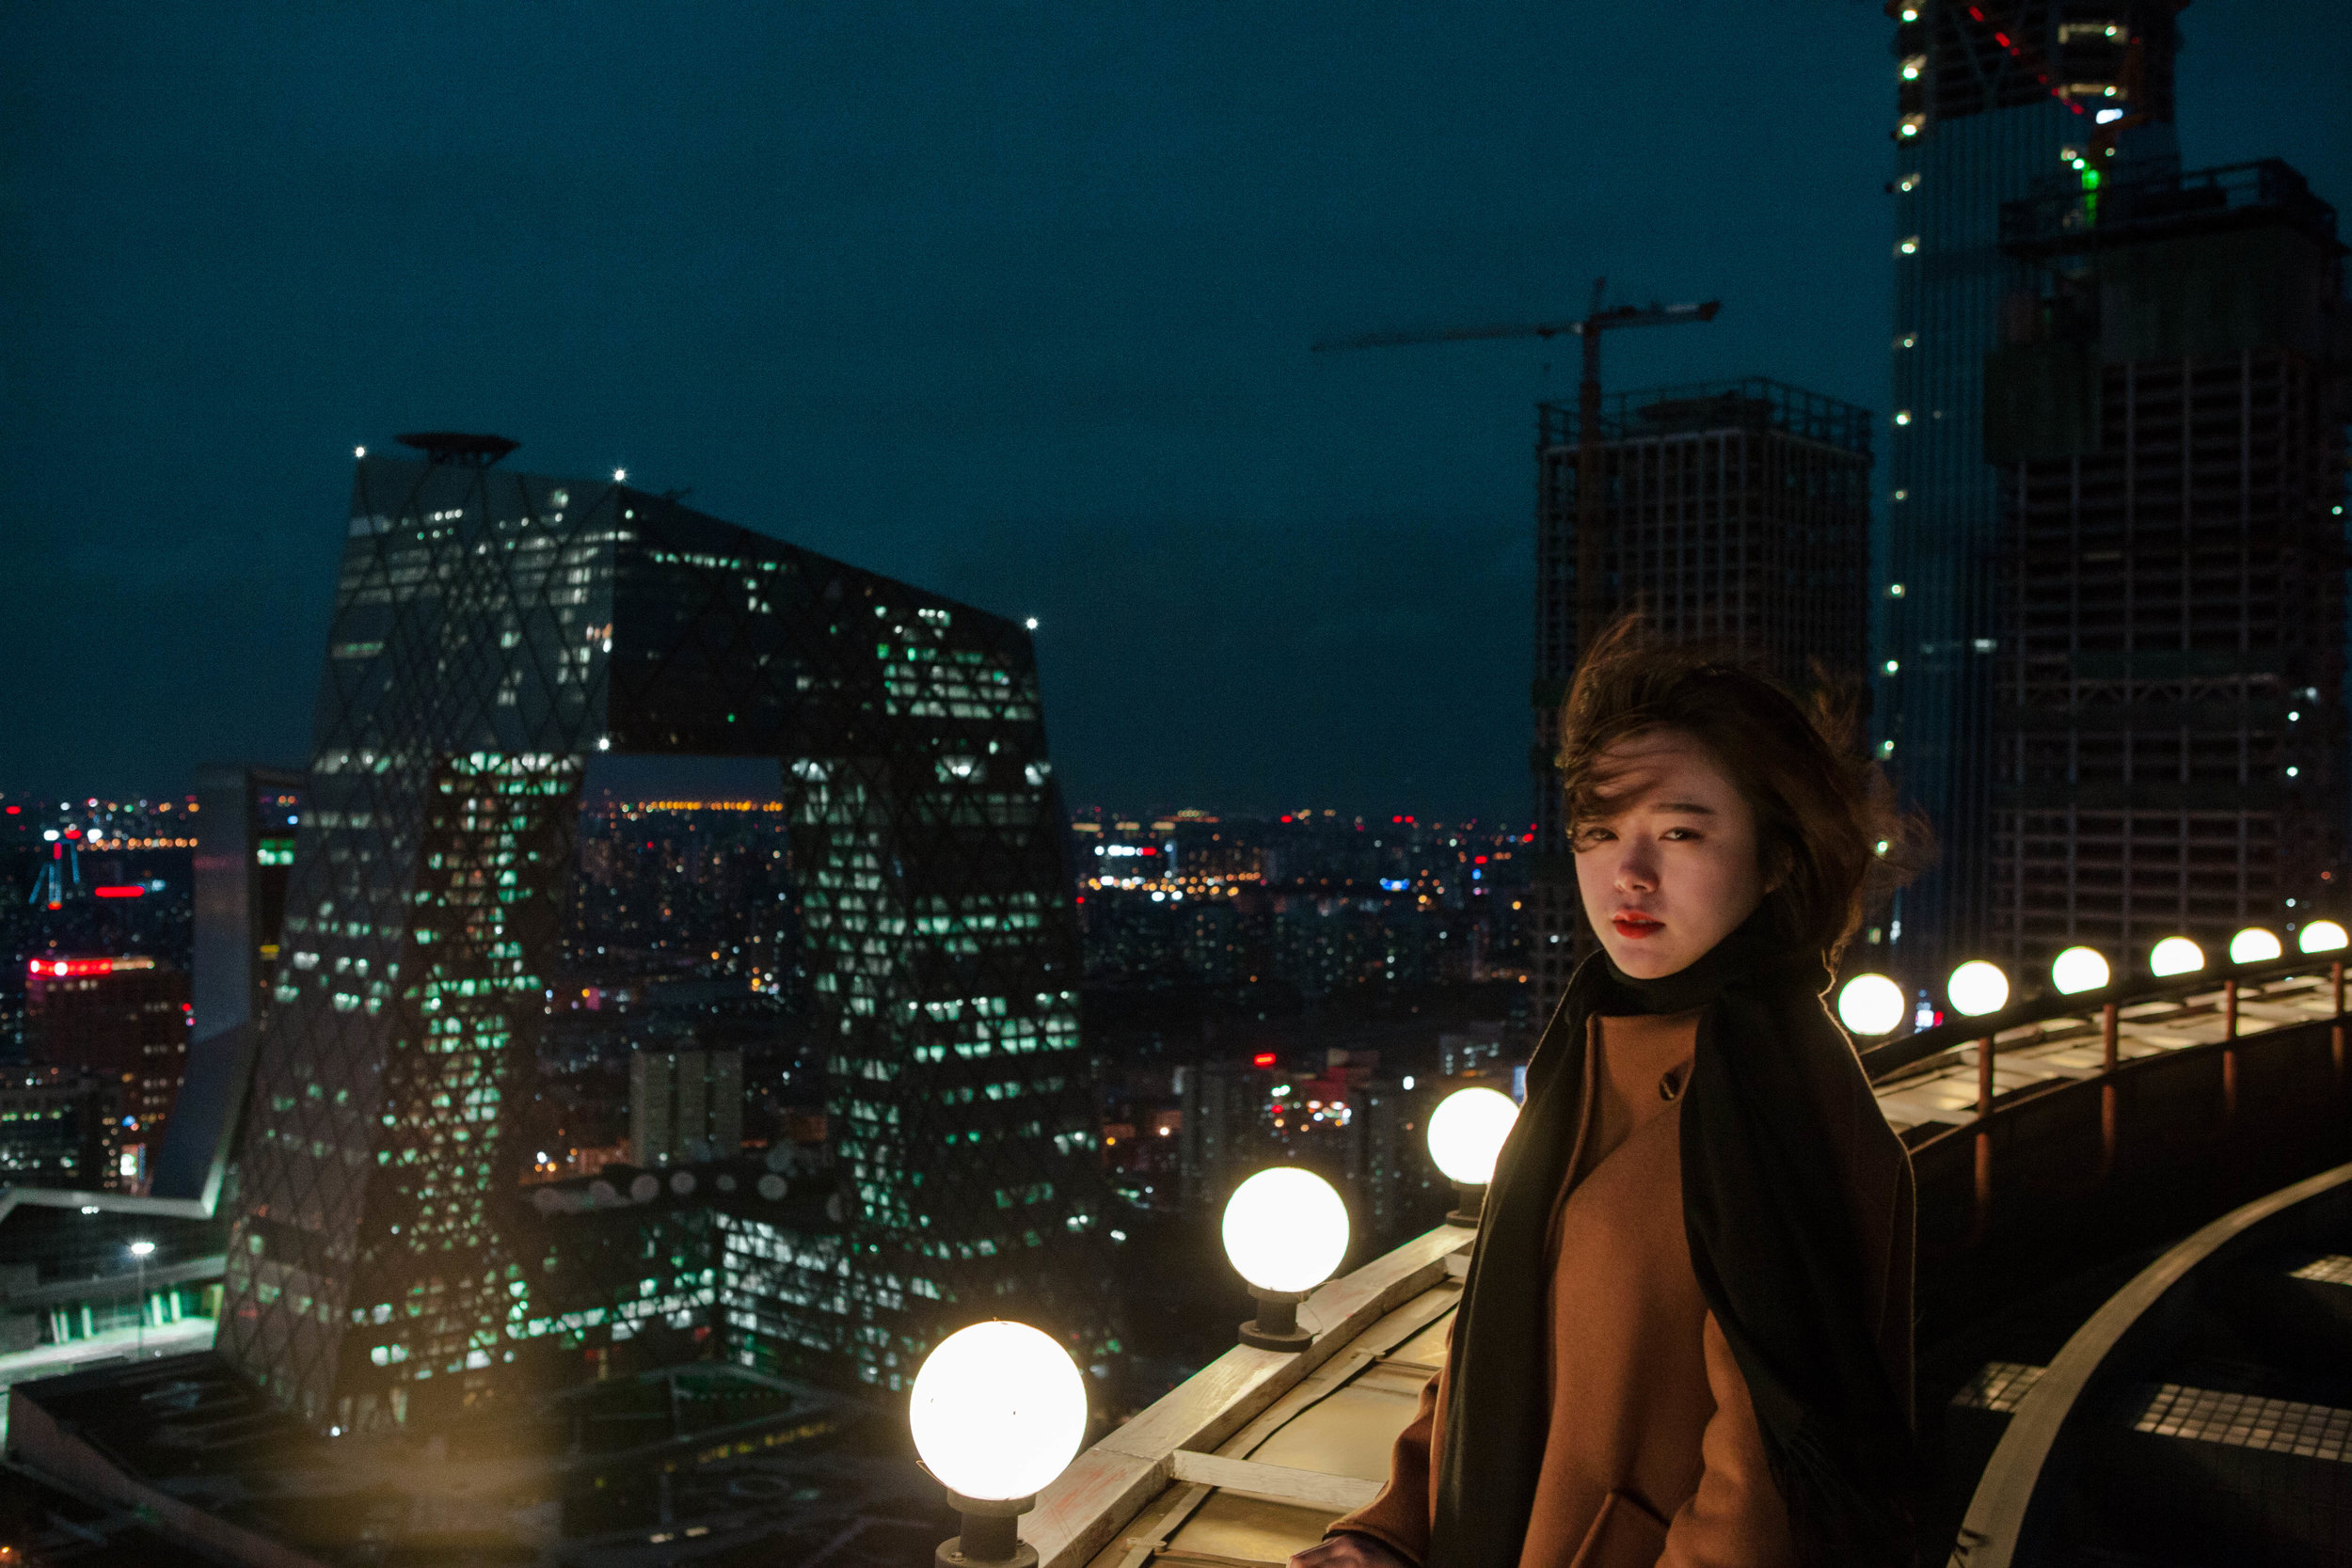 who-i-met-on-the-rooftop